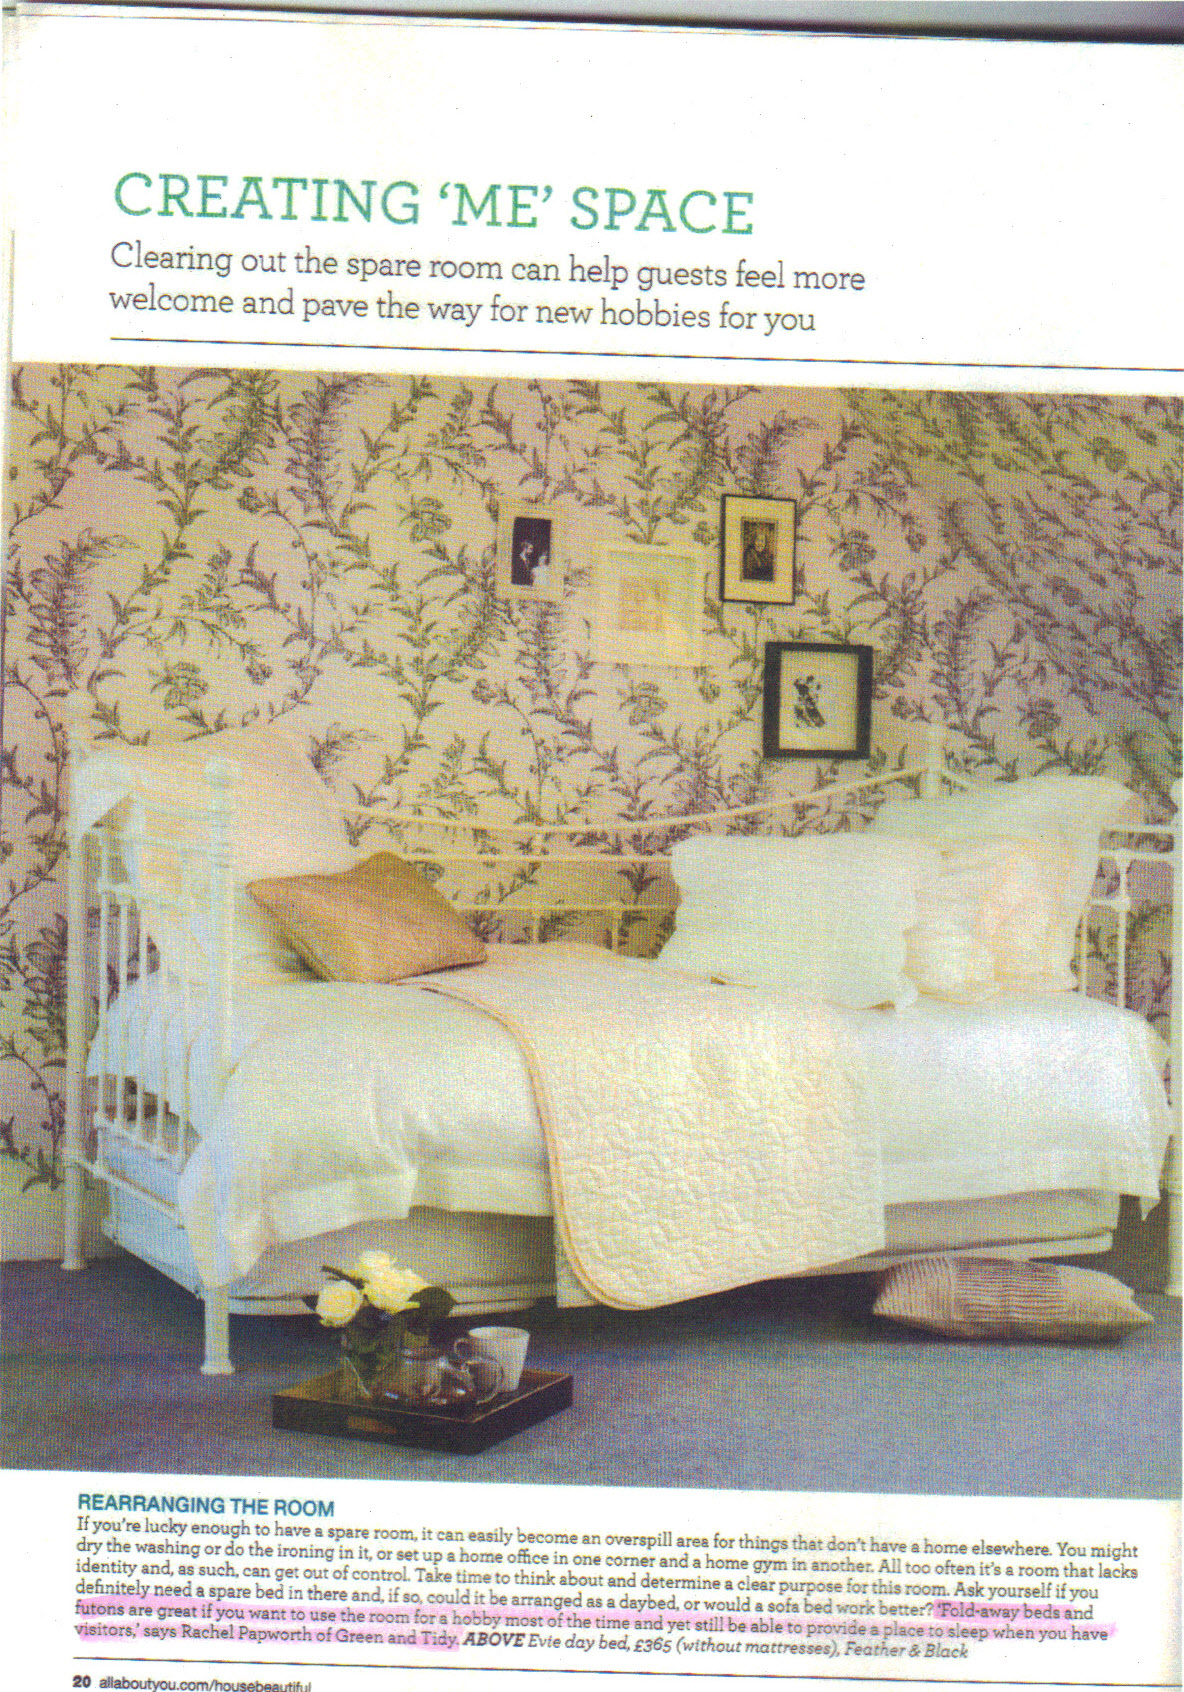 House Beautiful Feb 2013 p20 -  highlight